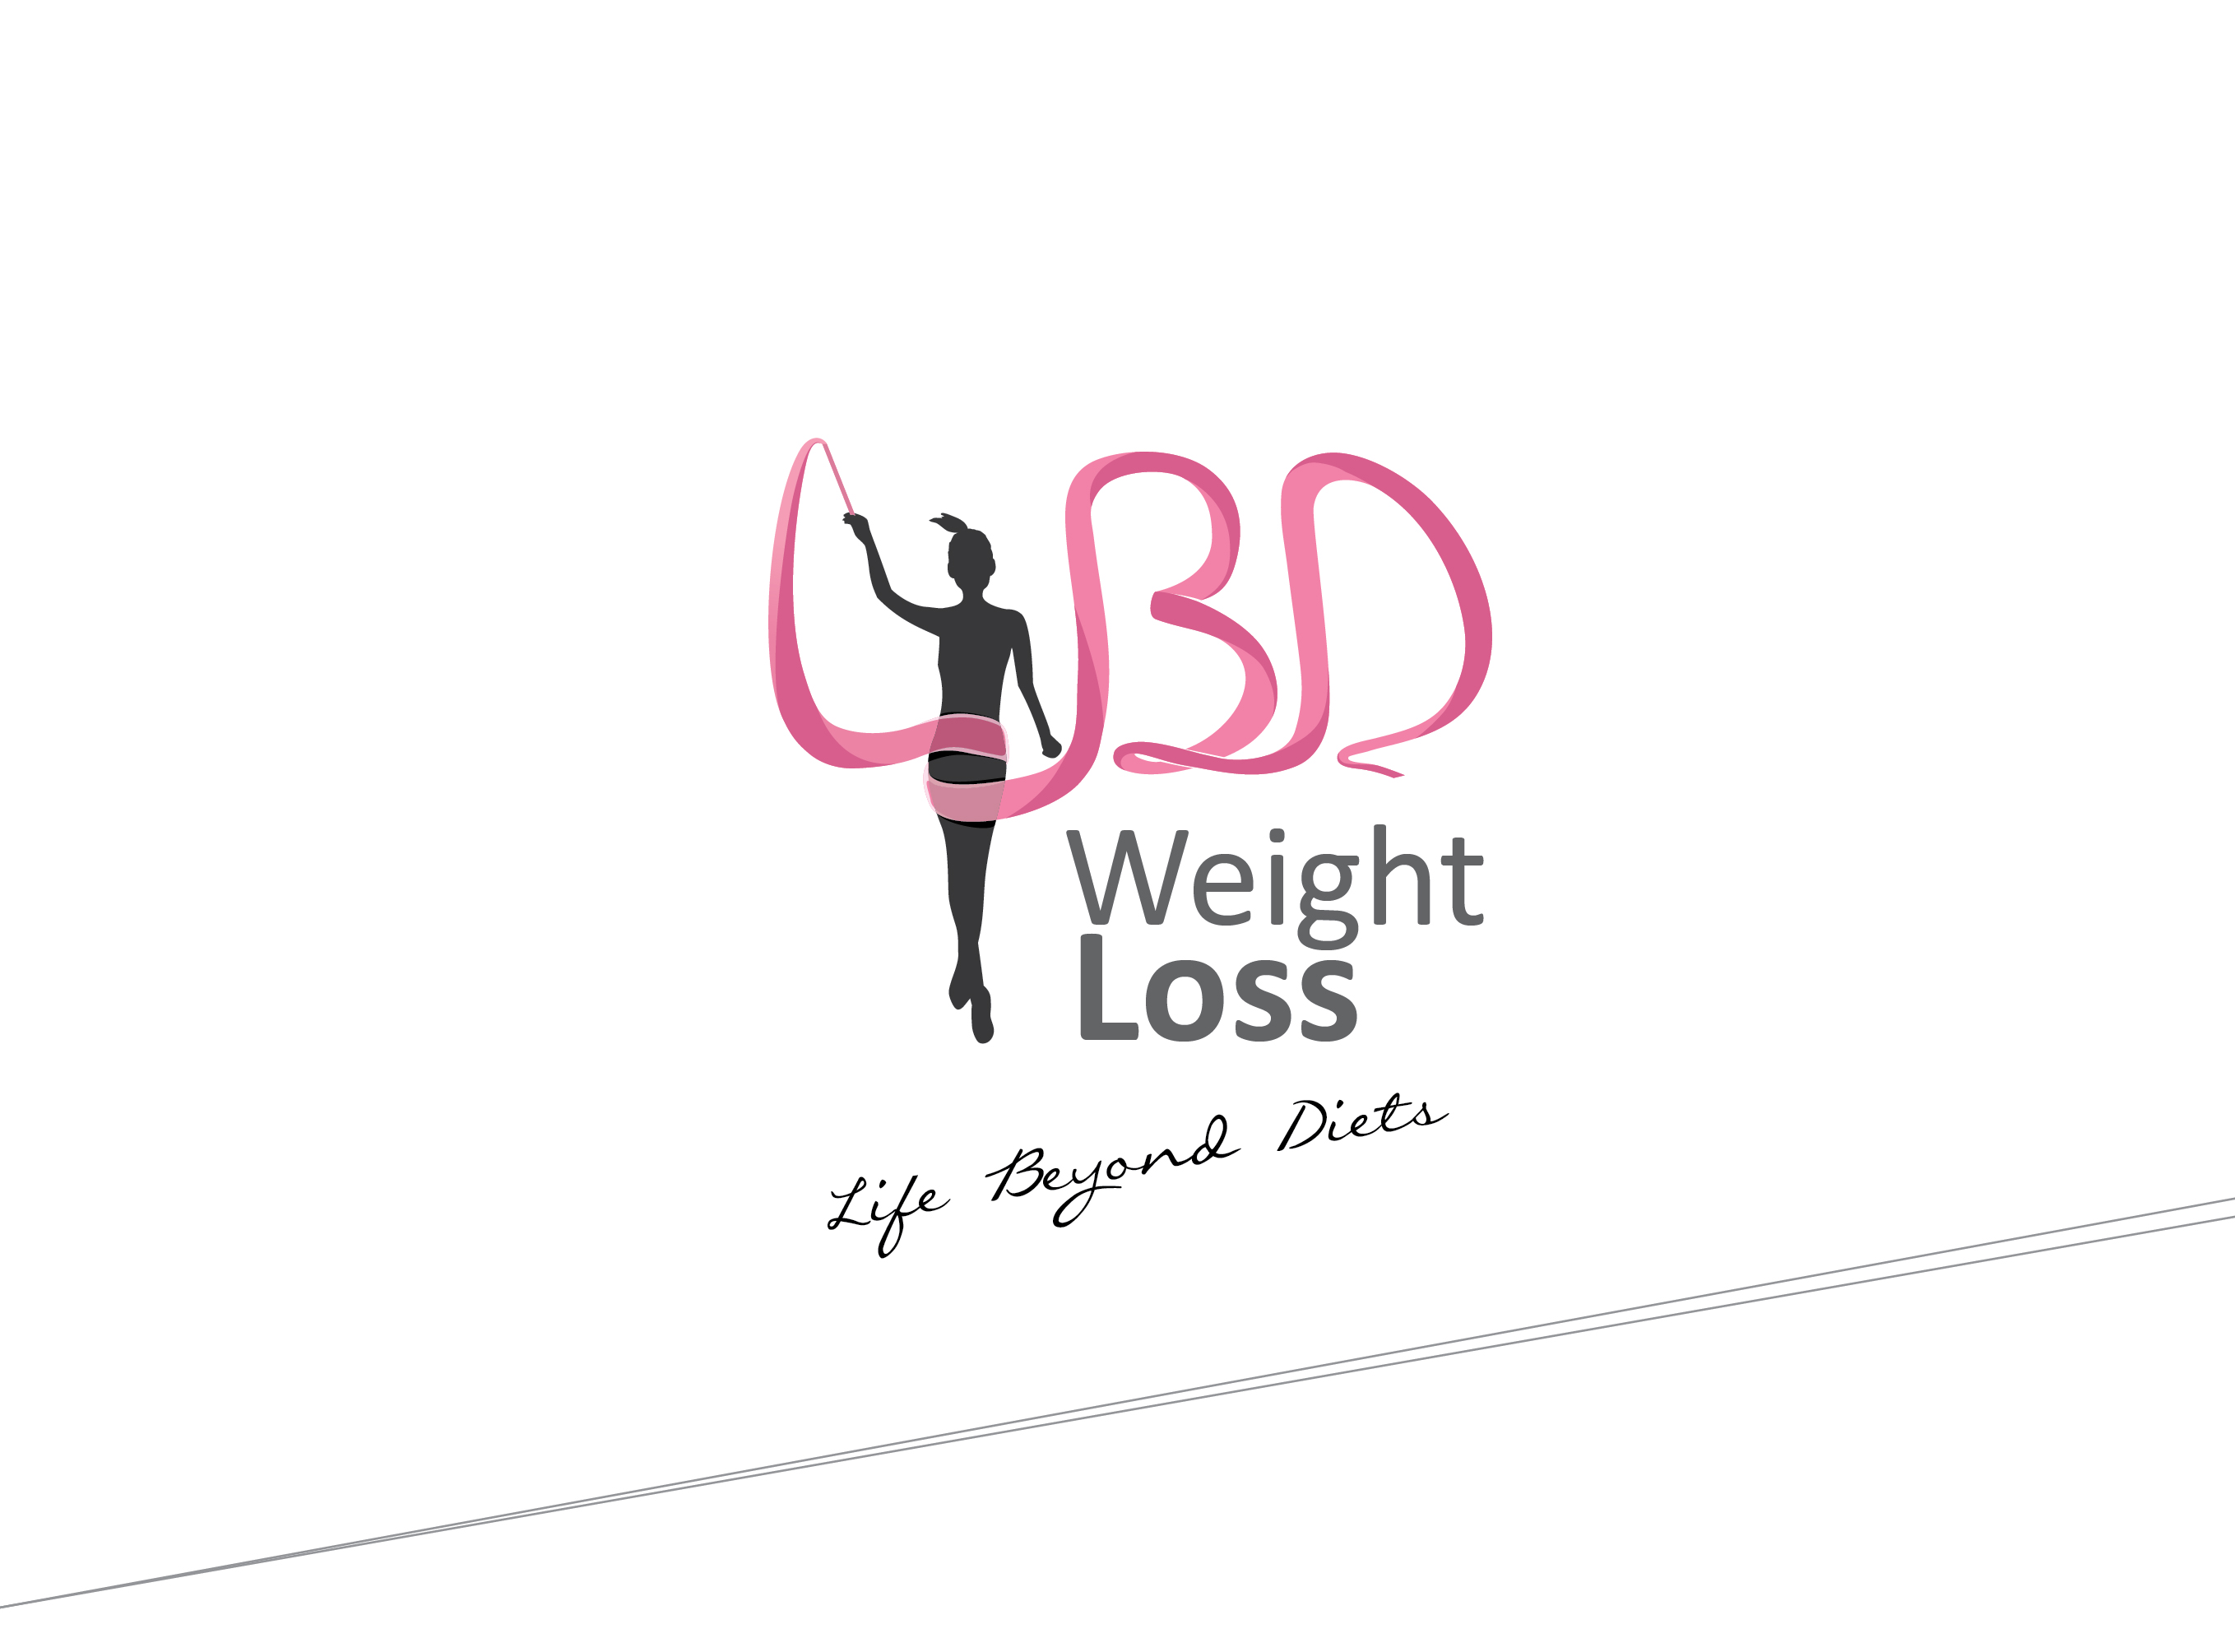 Logo Design by Hakan YILDIZ - Entry No. 53 in the Logo Design Contest Imaginative Logo Design for LBD Weight Loss.